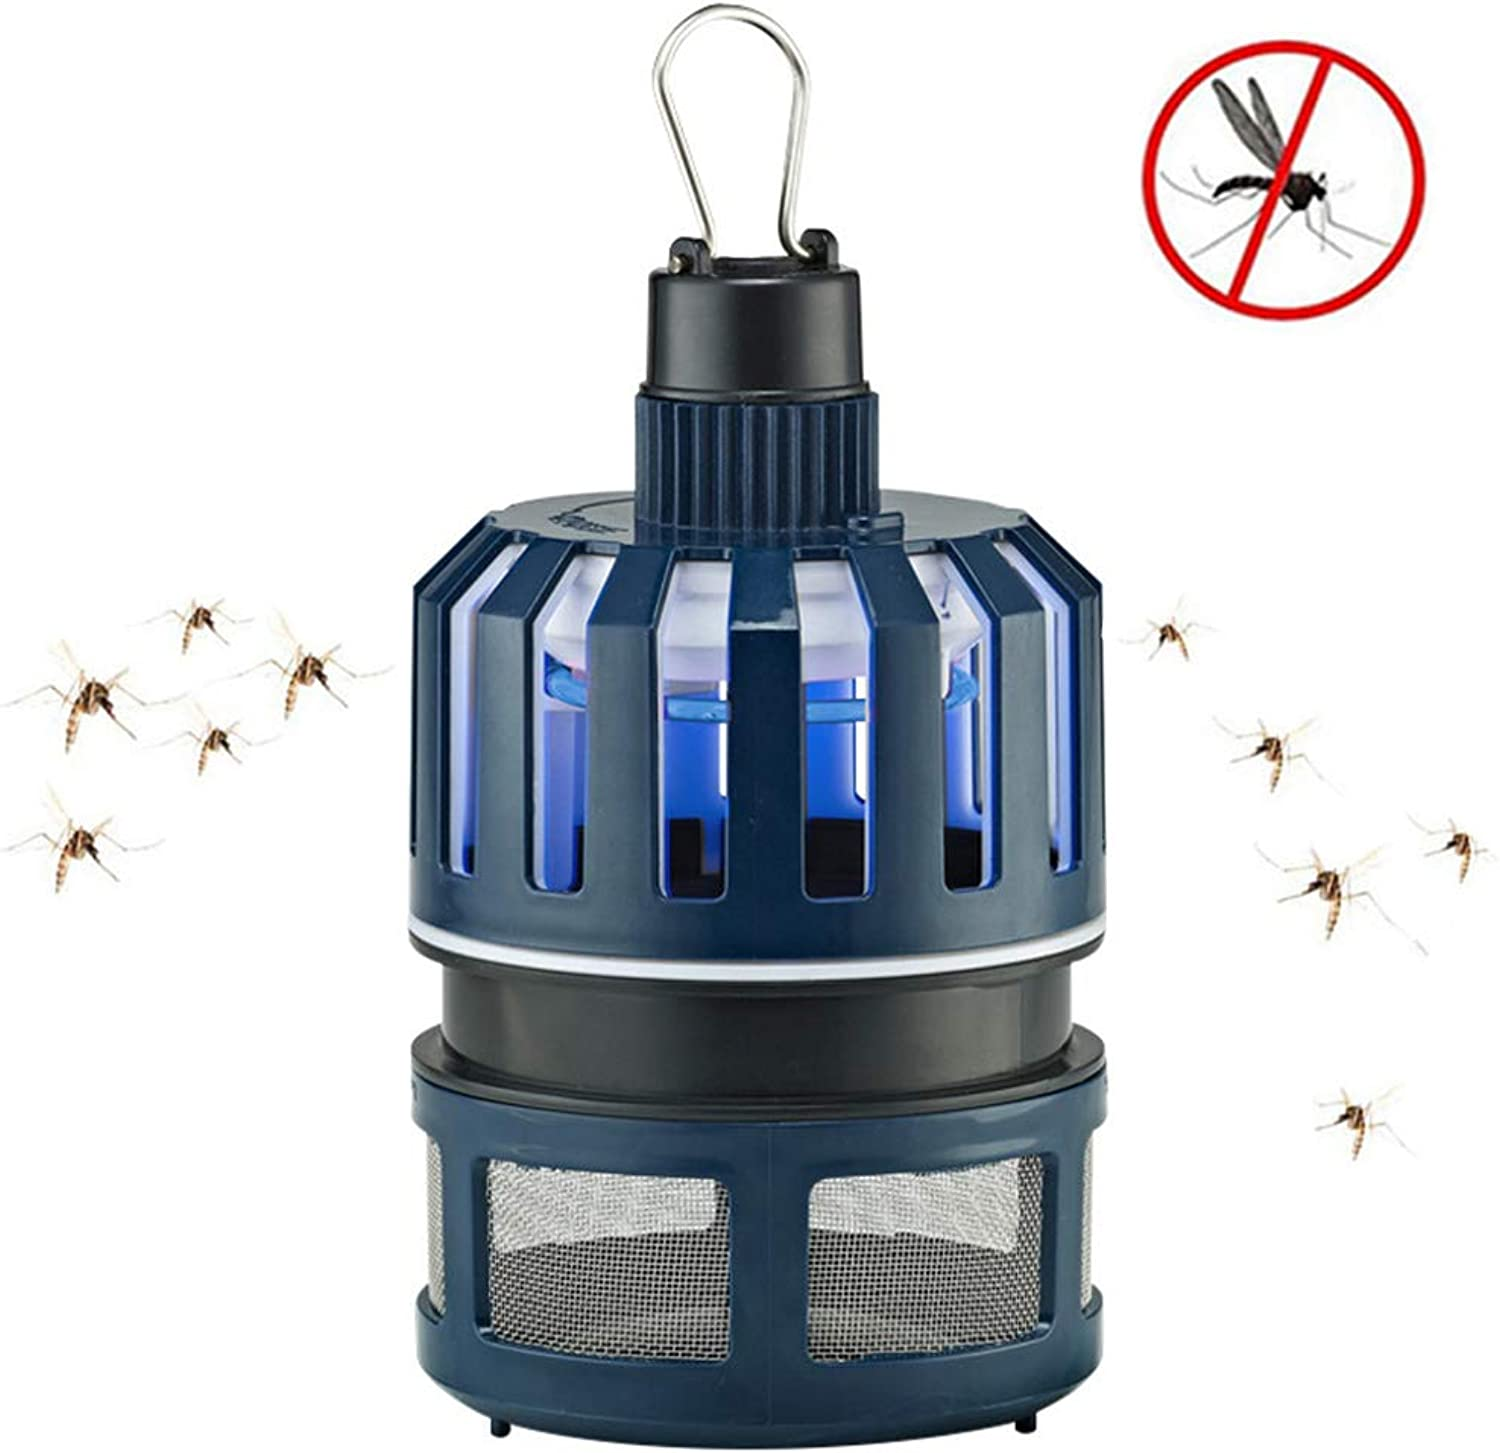 Insect Killer,Camping Lantern Mosquito Zapper Tent Light,Anti Bug Insect Repellent, Poison Free,for Indoor & Outdoors